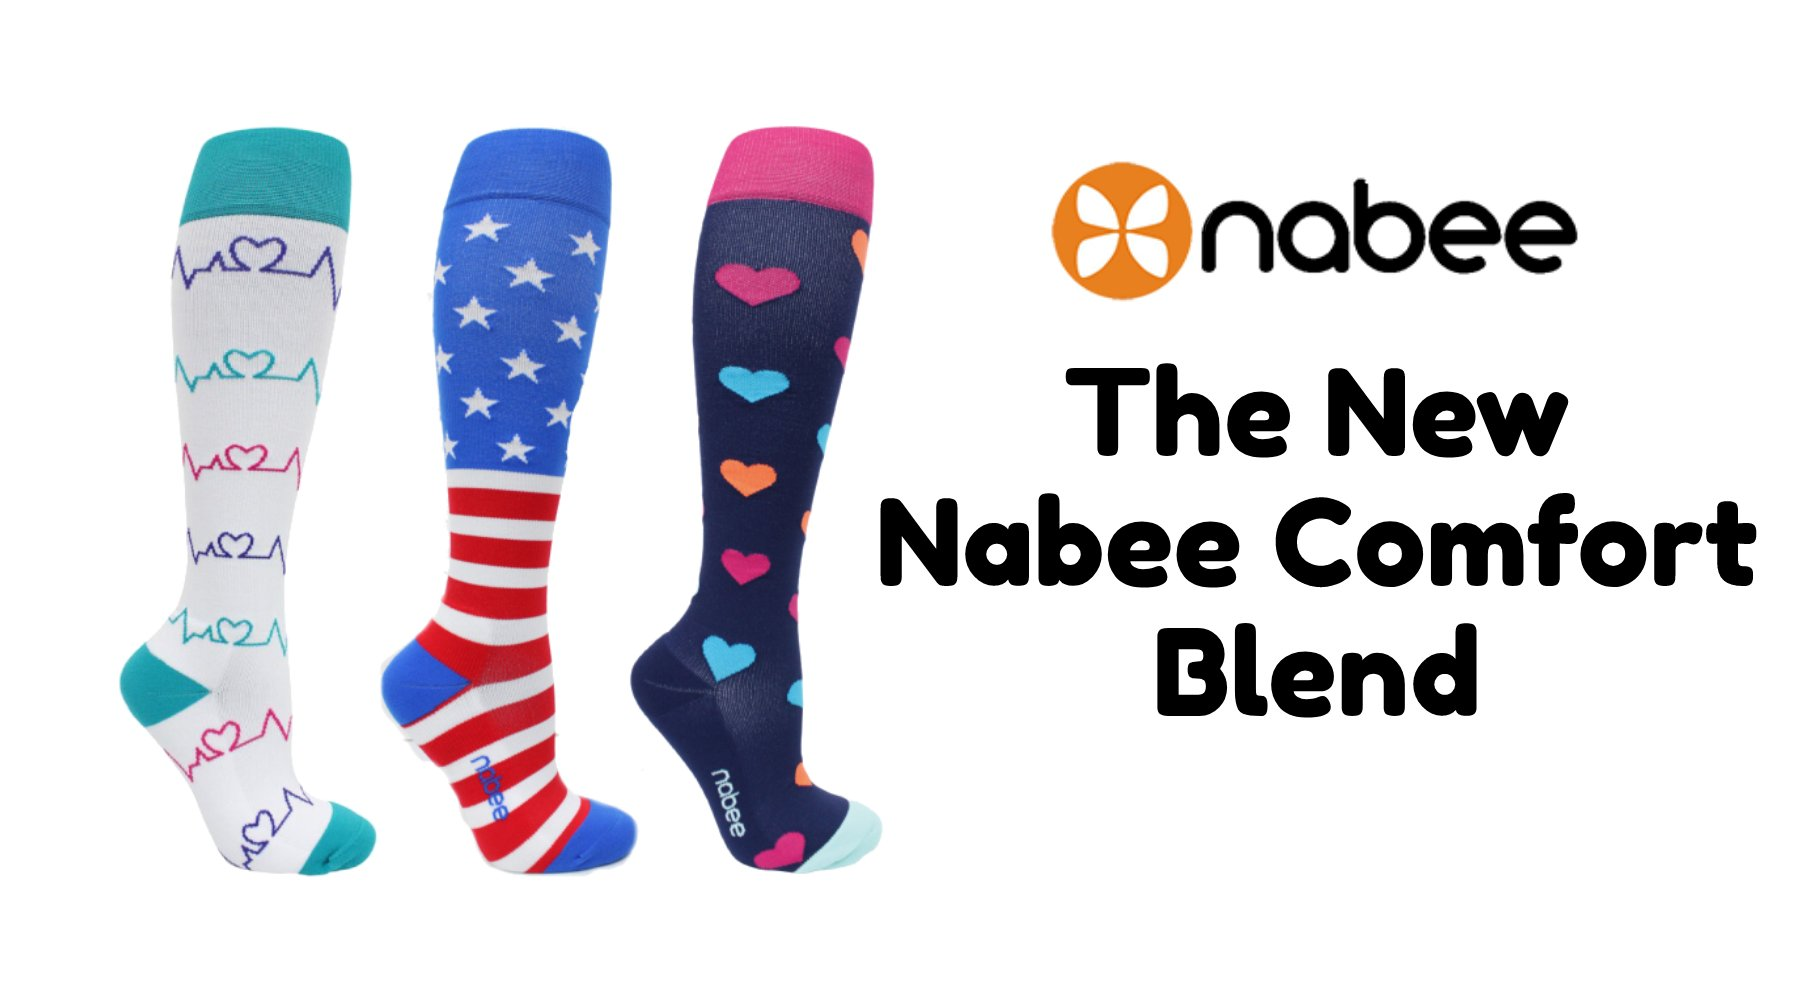 The New Nabee Comfort Blend